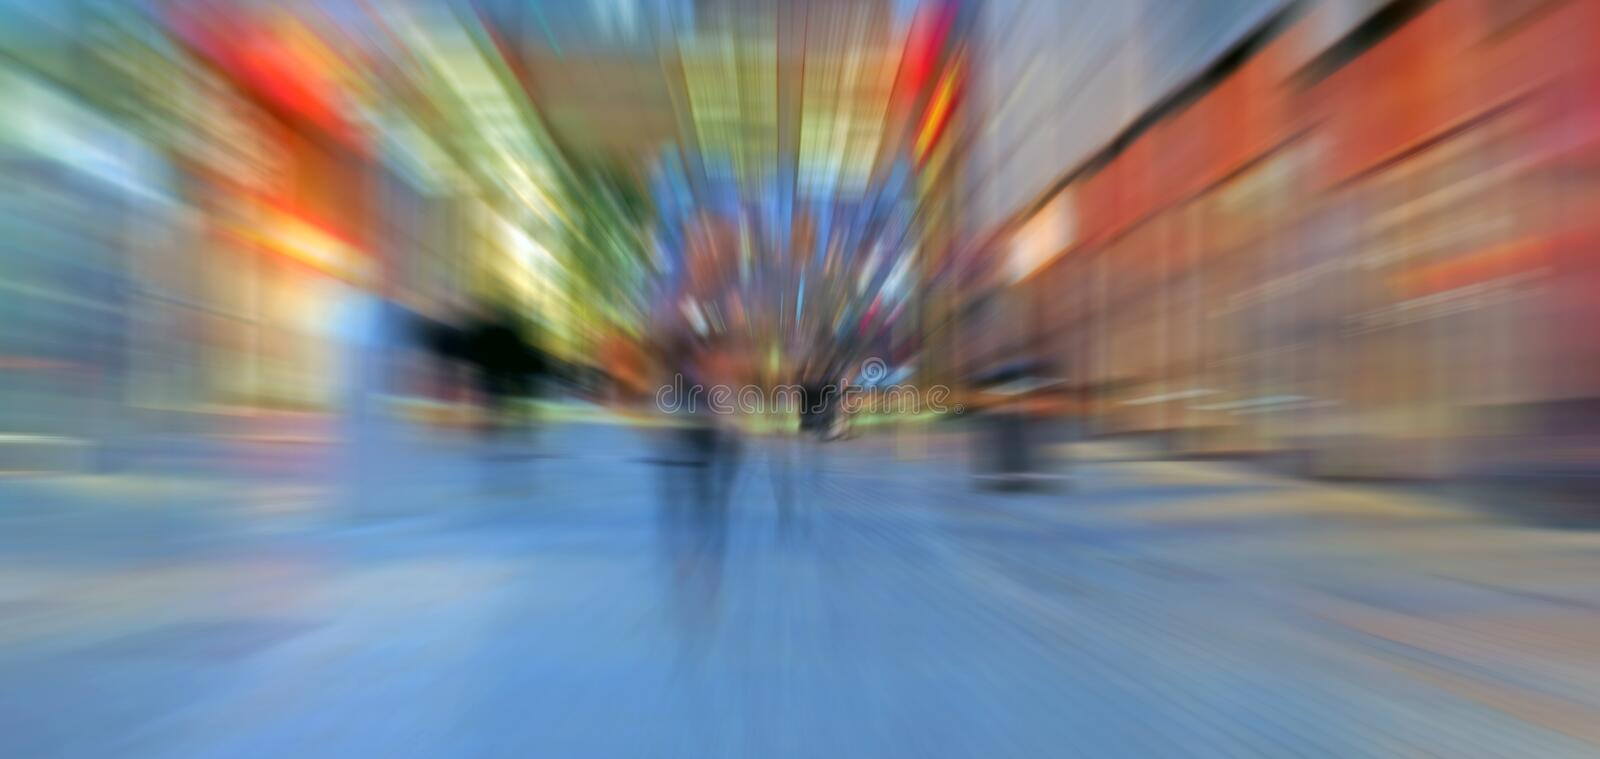 Abstract zoom blur of a modern city street at night with people walking and bright illuminated buildings stock photos